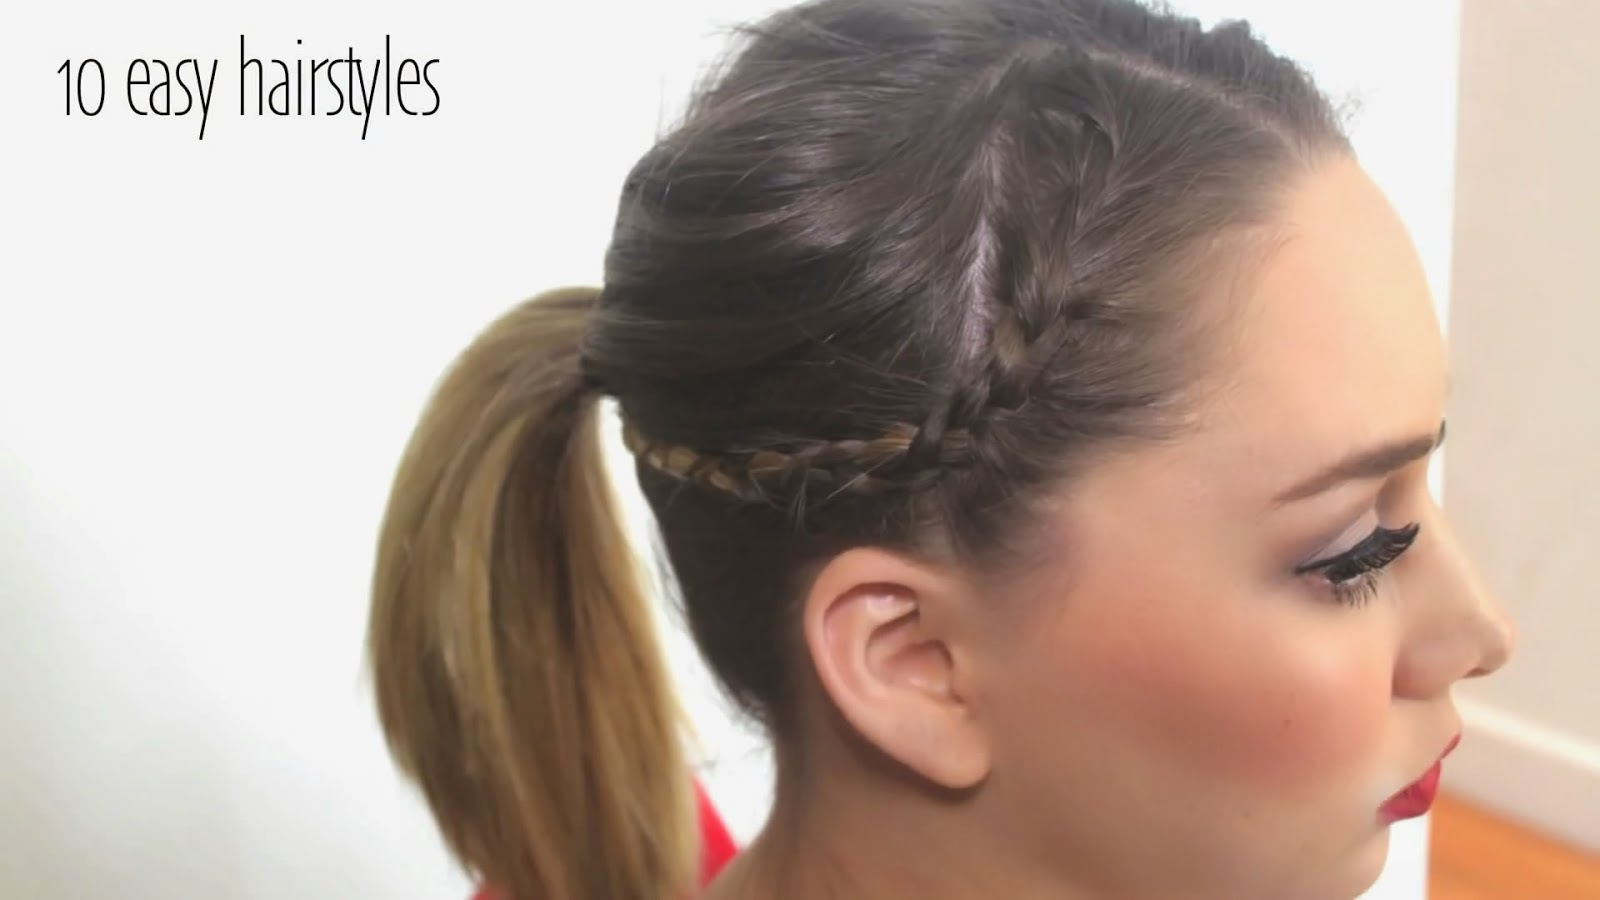 Wondrous Stylevia Top 10 Easy Hairstyles Can Set In 5 Minutes Short Hairstyles Gunalazisus